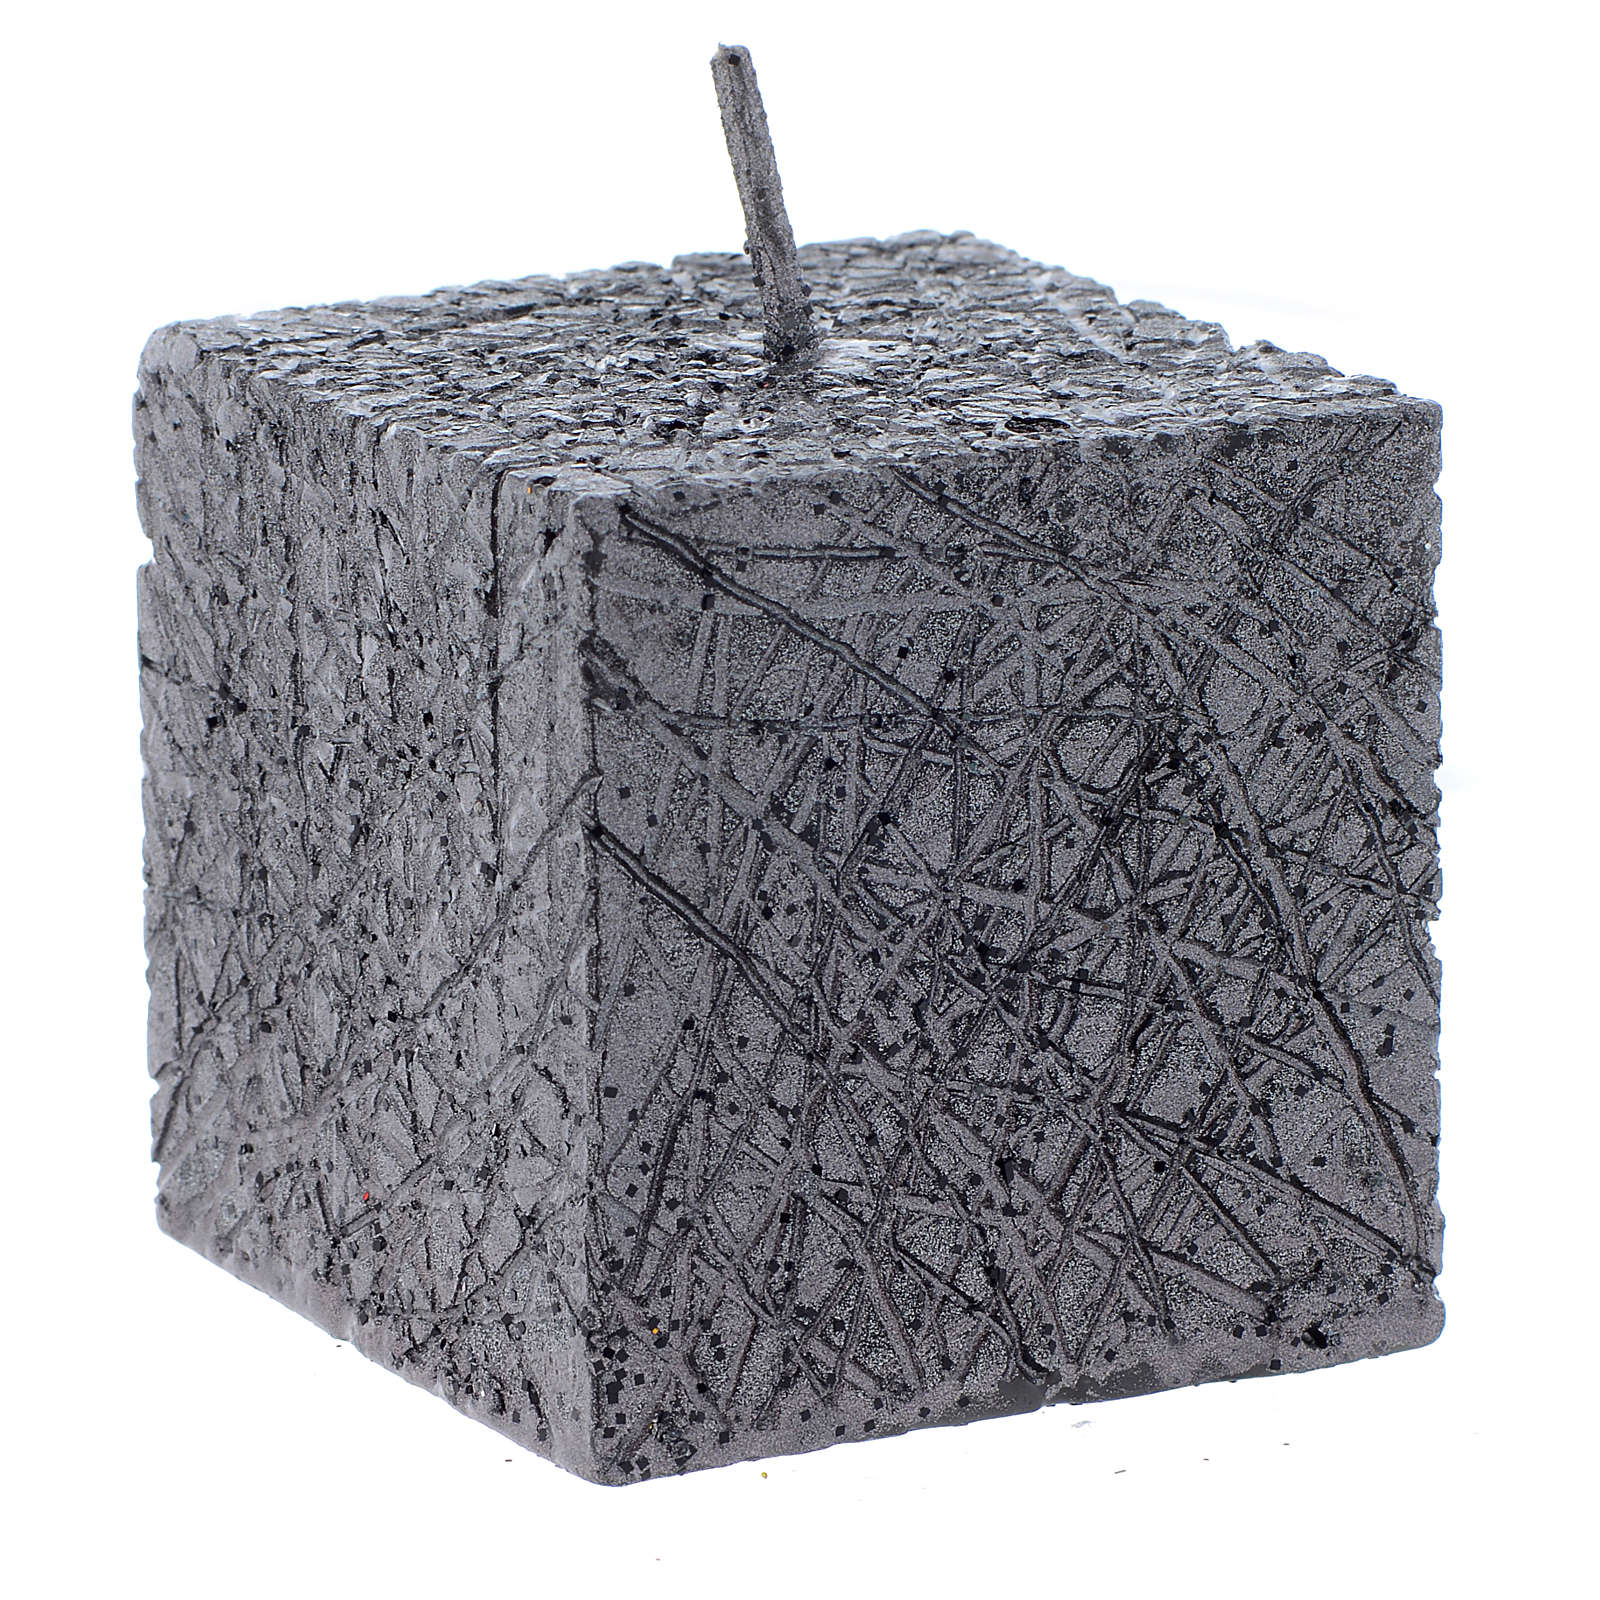 Christmas candle, comet model, cubic shaped charcoal grey colour 5x5cm 3